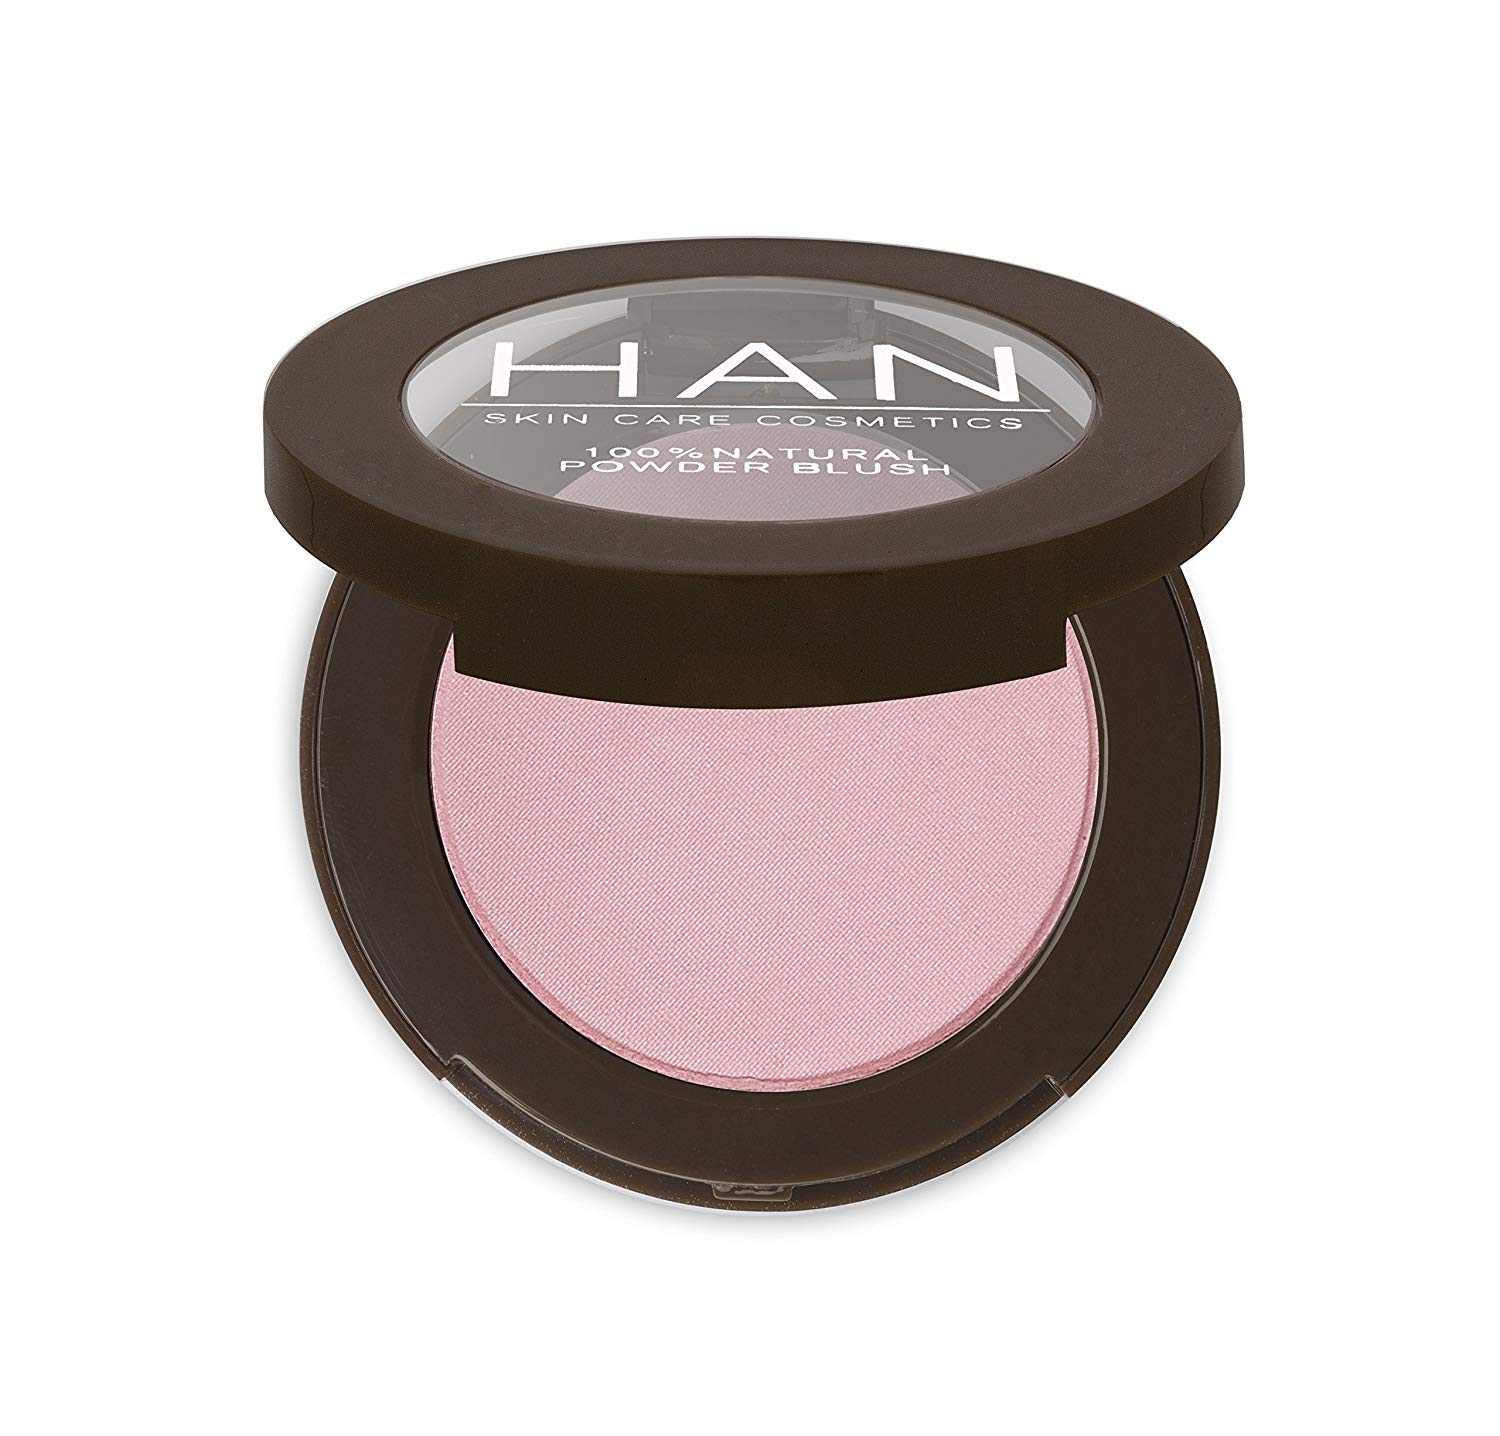 HAN Skincare Cosmetics All Natural Pressed Blush, Baby Pink